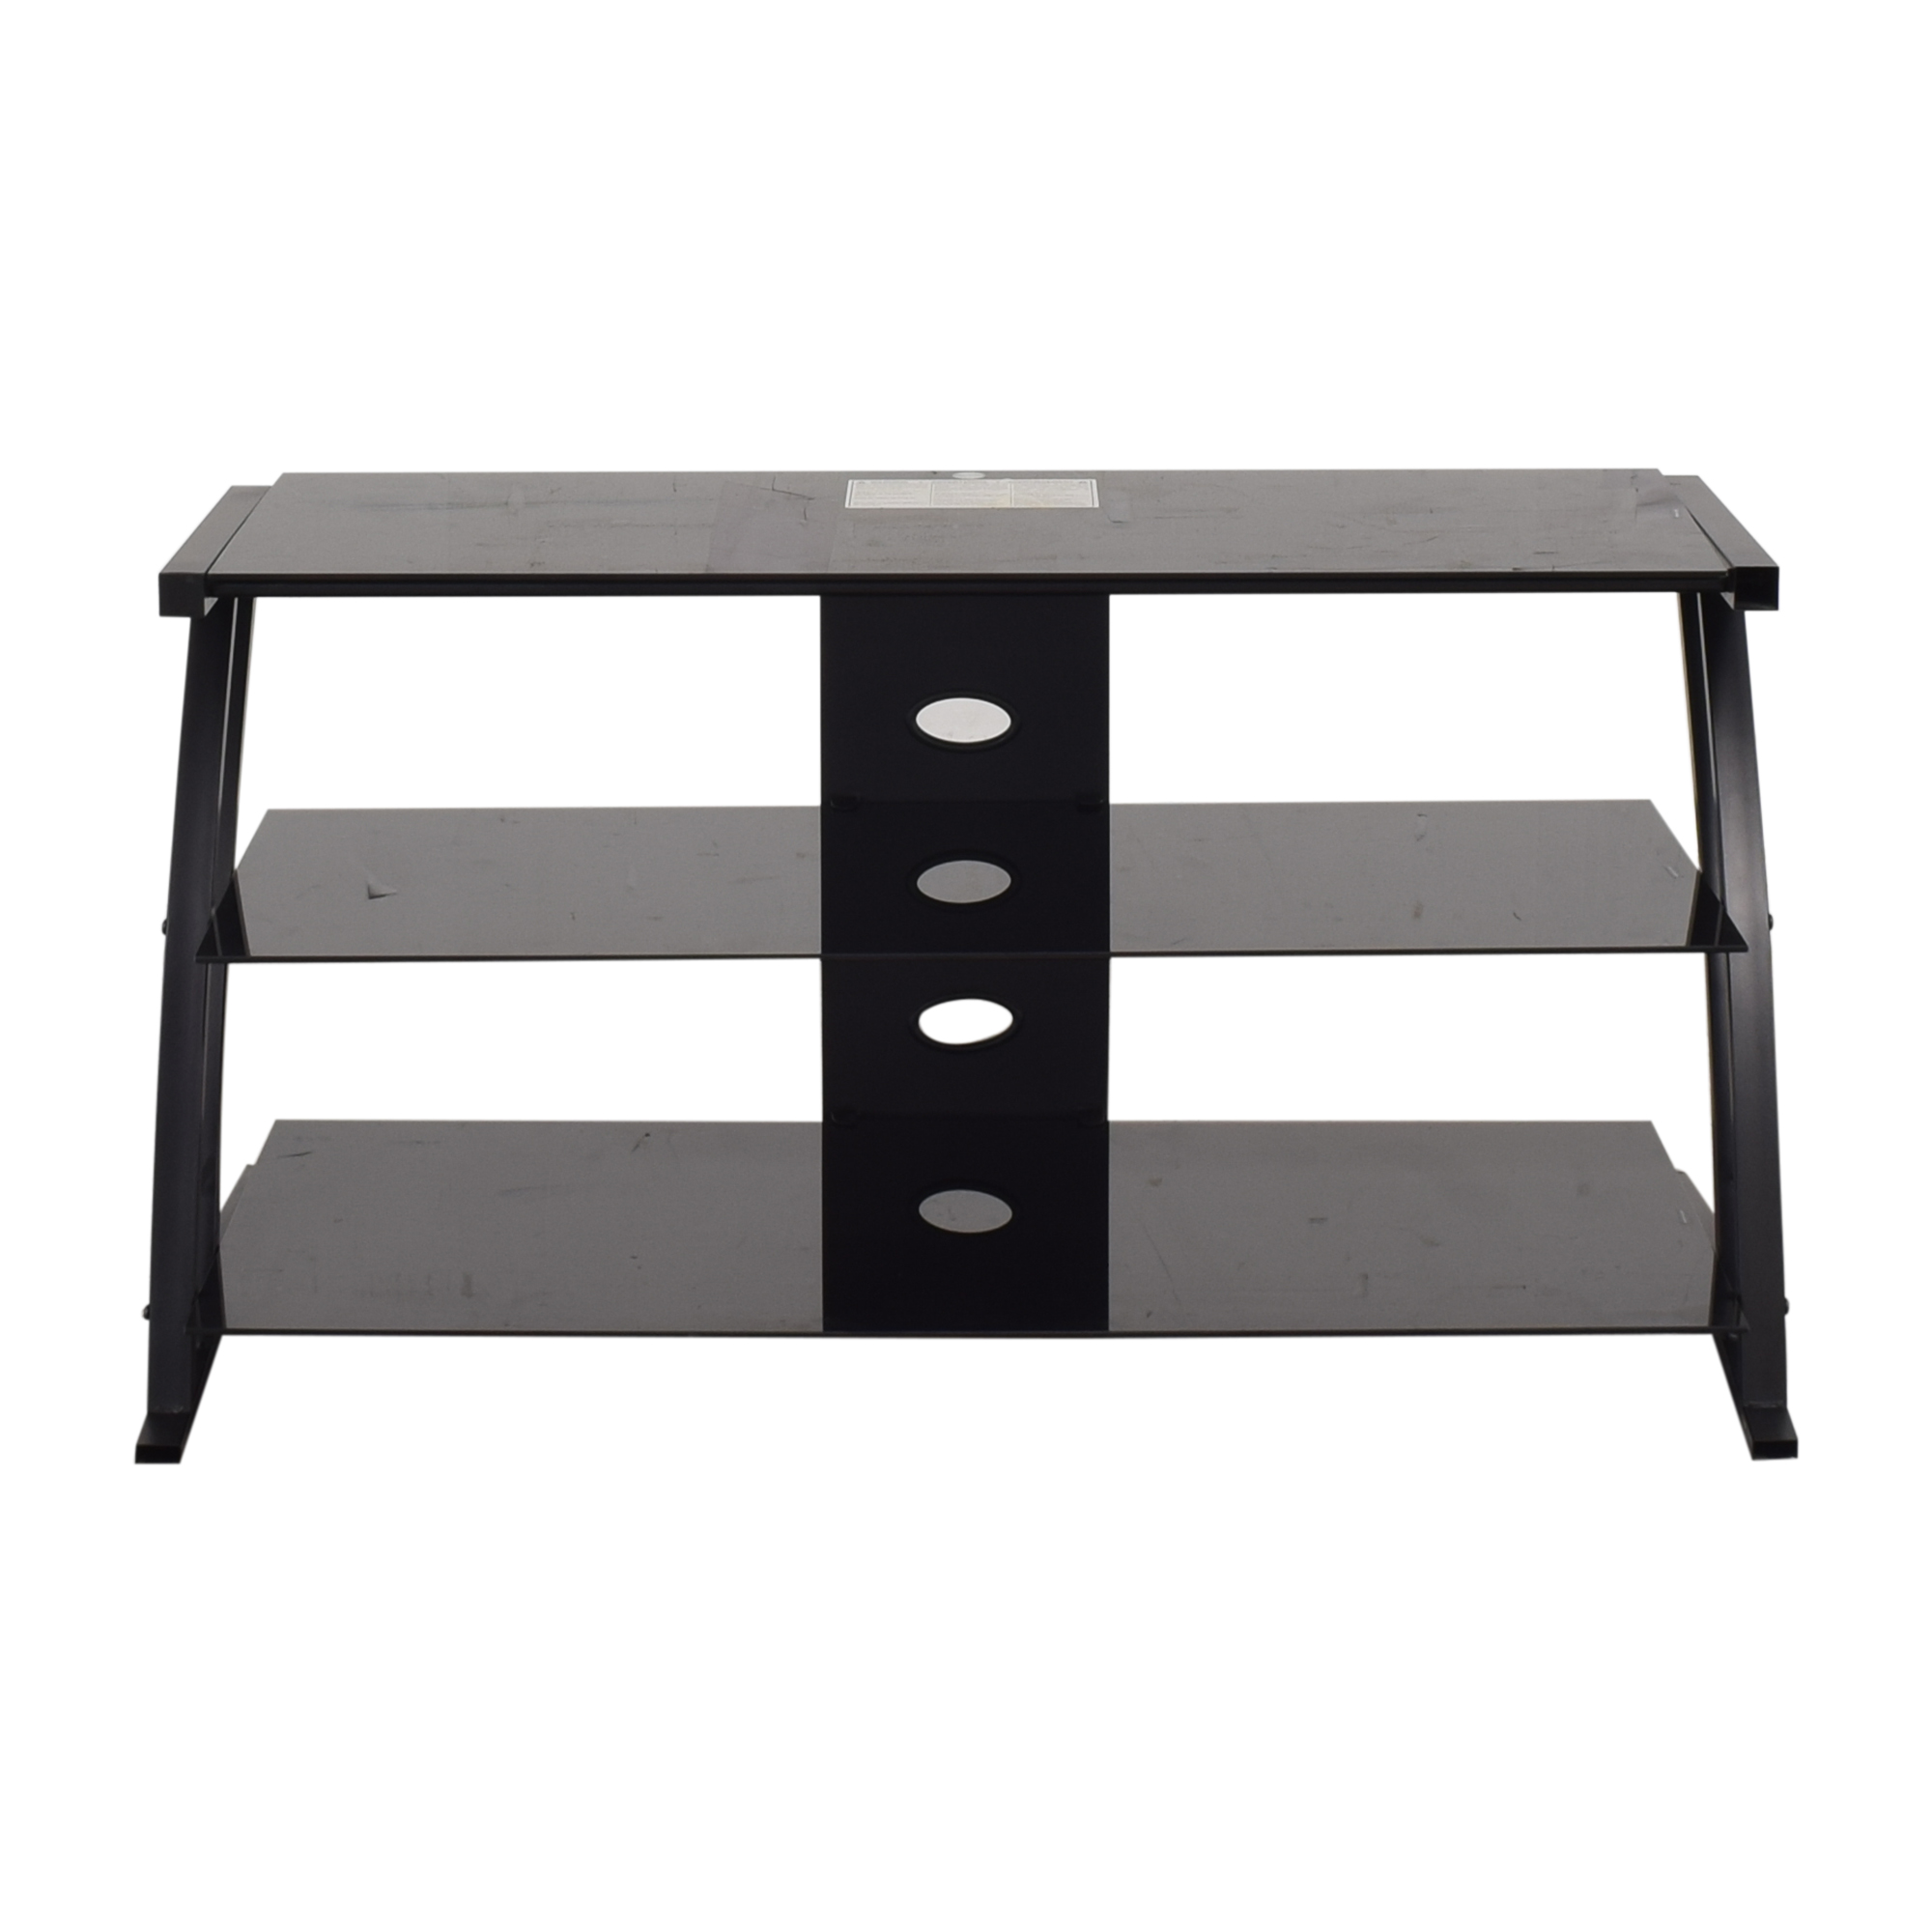 Three Tier TV Stand nj